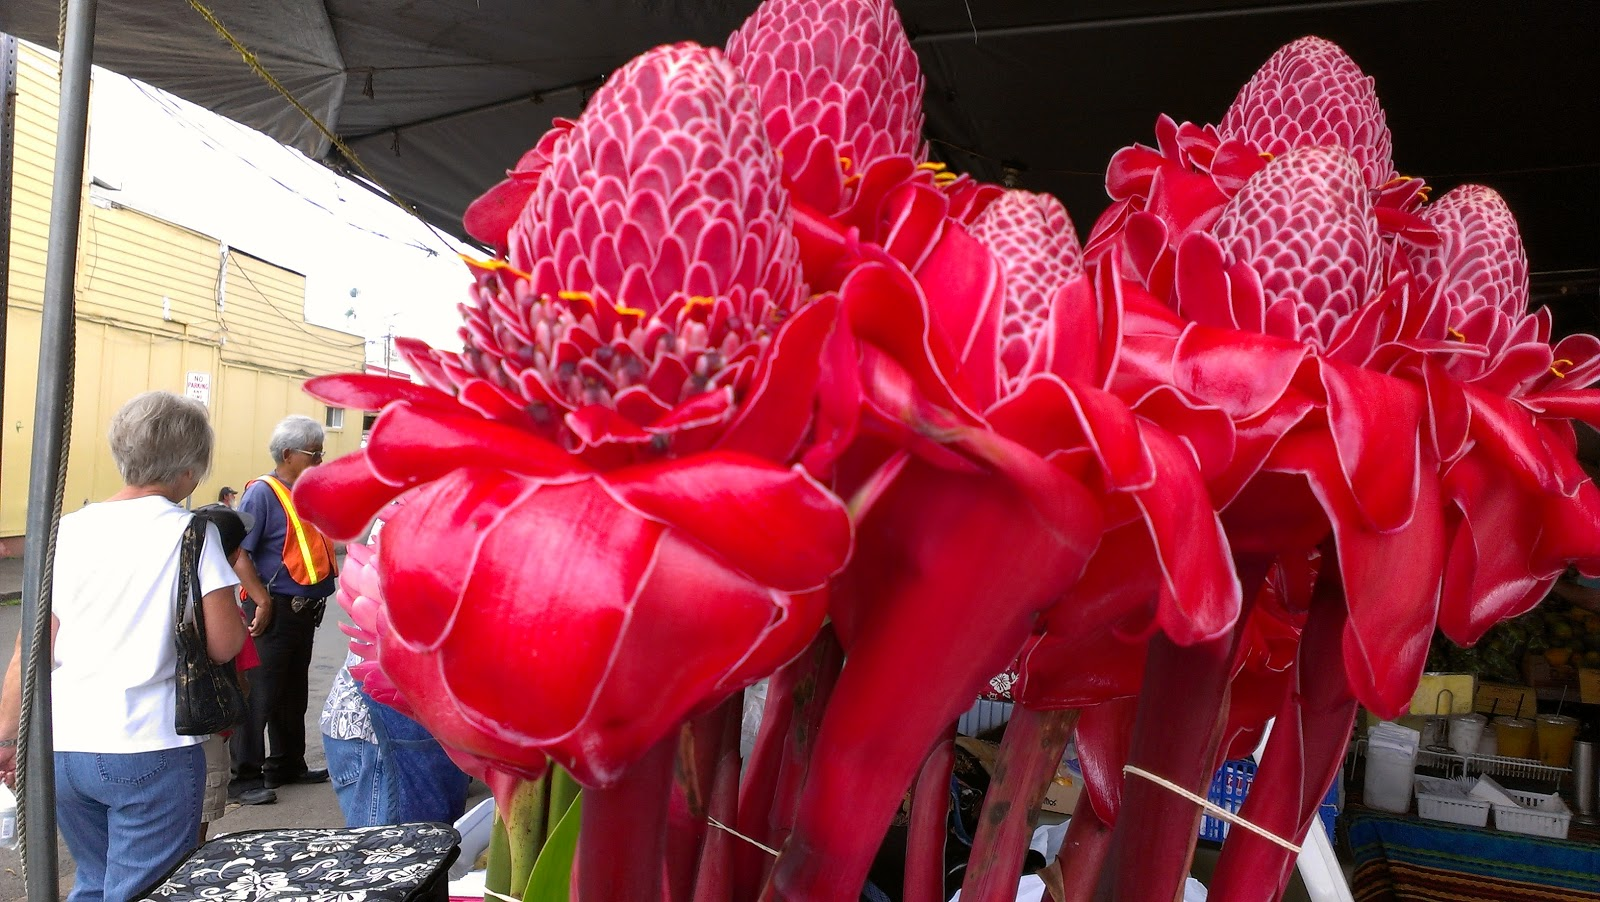 All hawaii news hawaii flower sales at 14 year low ballot problems hawaii ginger flowers at farmers market c 2012 all hawaii news izmirmasajfo Gallery